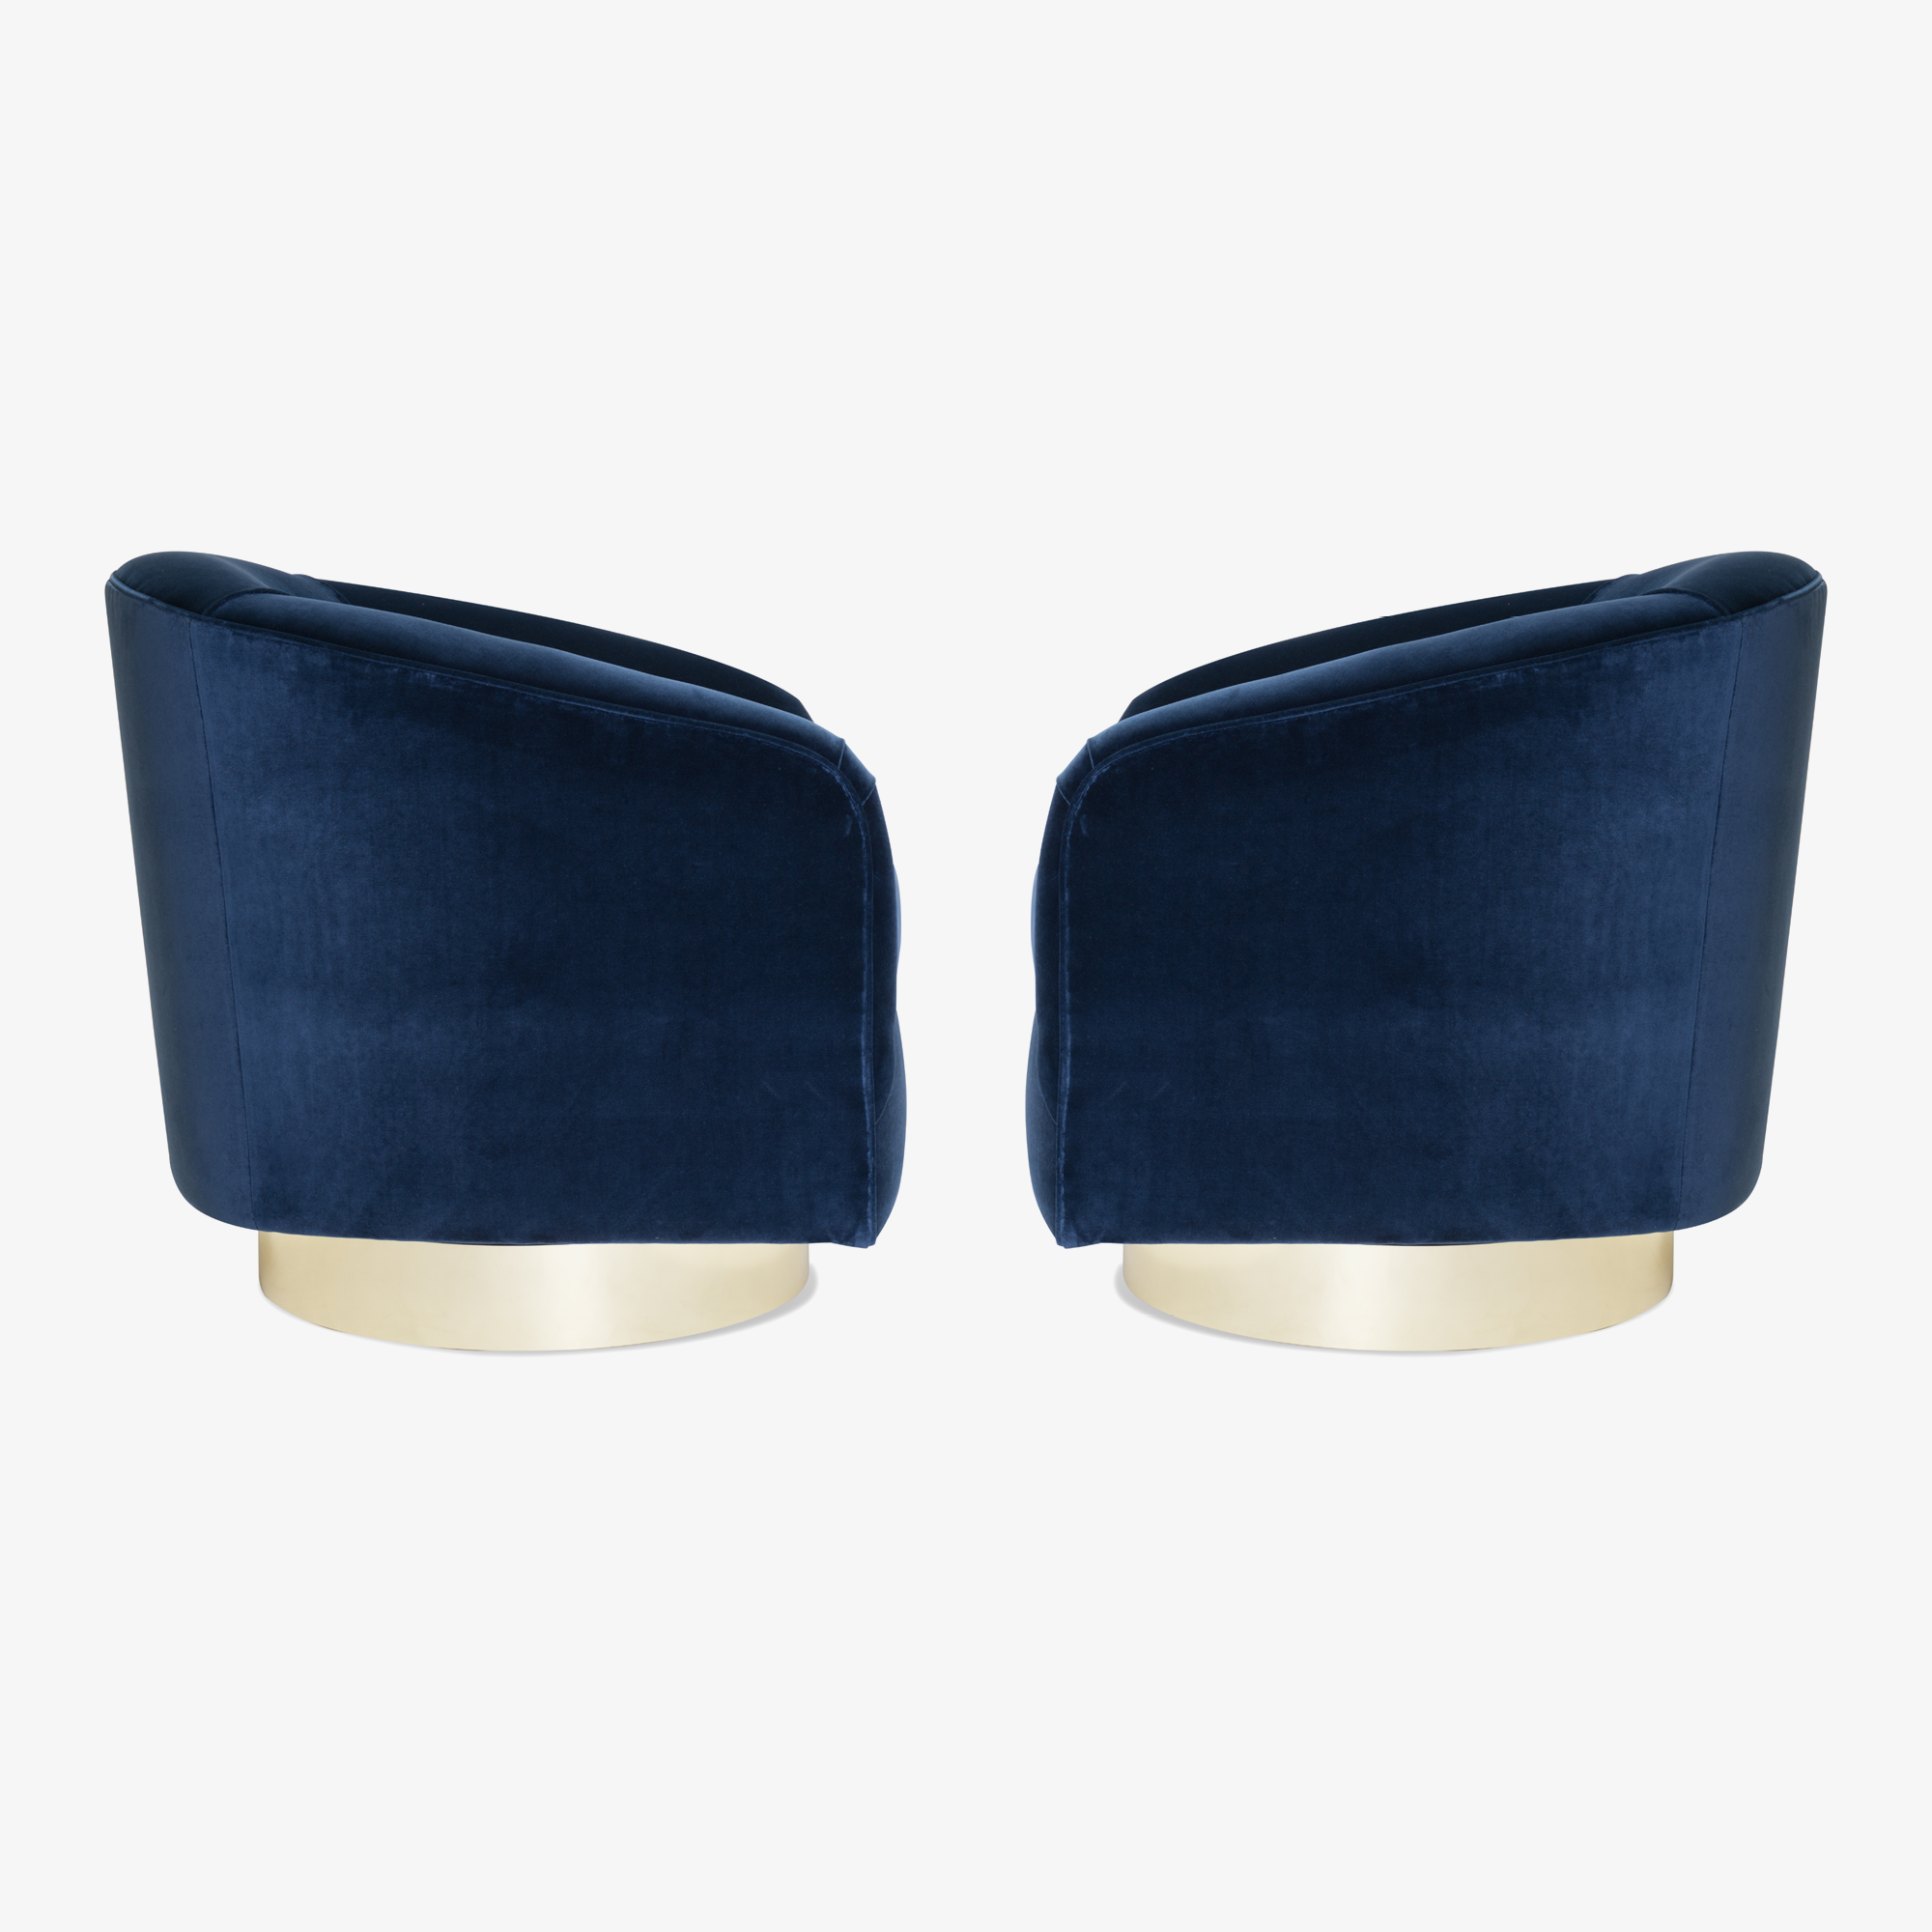 Swivel Tub Chairs in Navy Velvet with Polished Brass Bases, Pair3.png